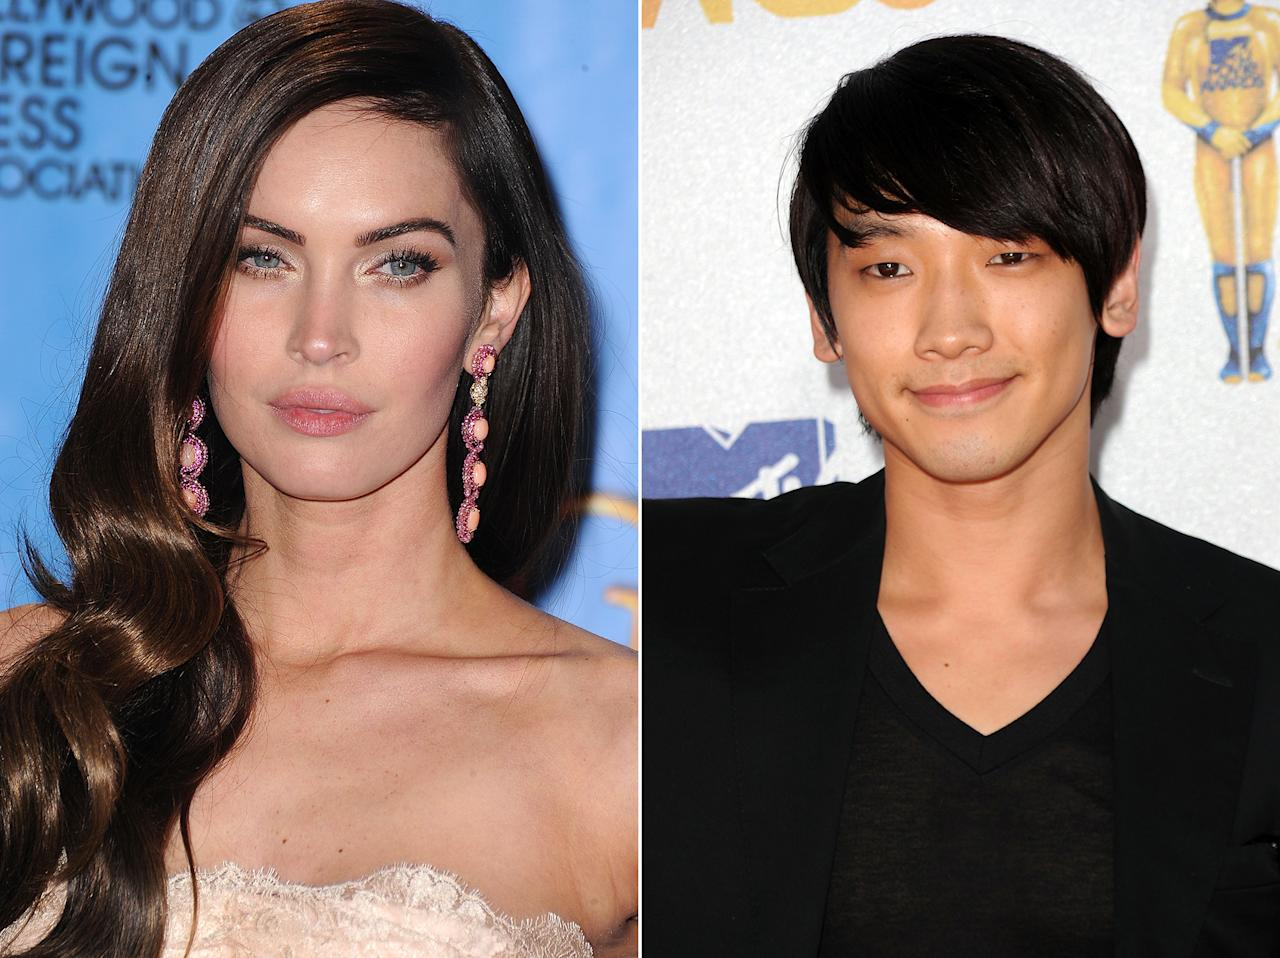 """Megan Fox had a huge crush on Korean pop star Rain before she was happily married. Rain is the Korean equivalent of Justin Timberlake. Fox may be a married mom now, but in a past interview she gushed over his """"40-pack abs"""" and invited him to look her up if he comes to the United States."""